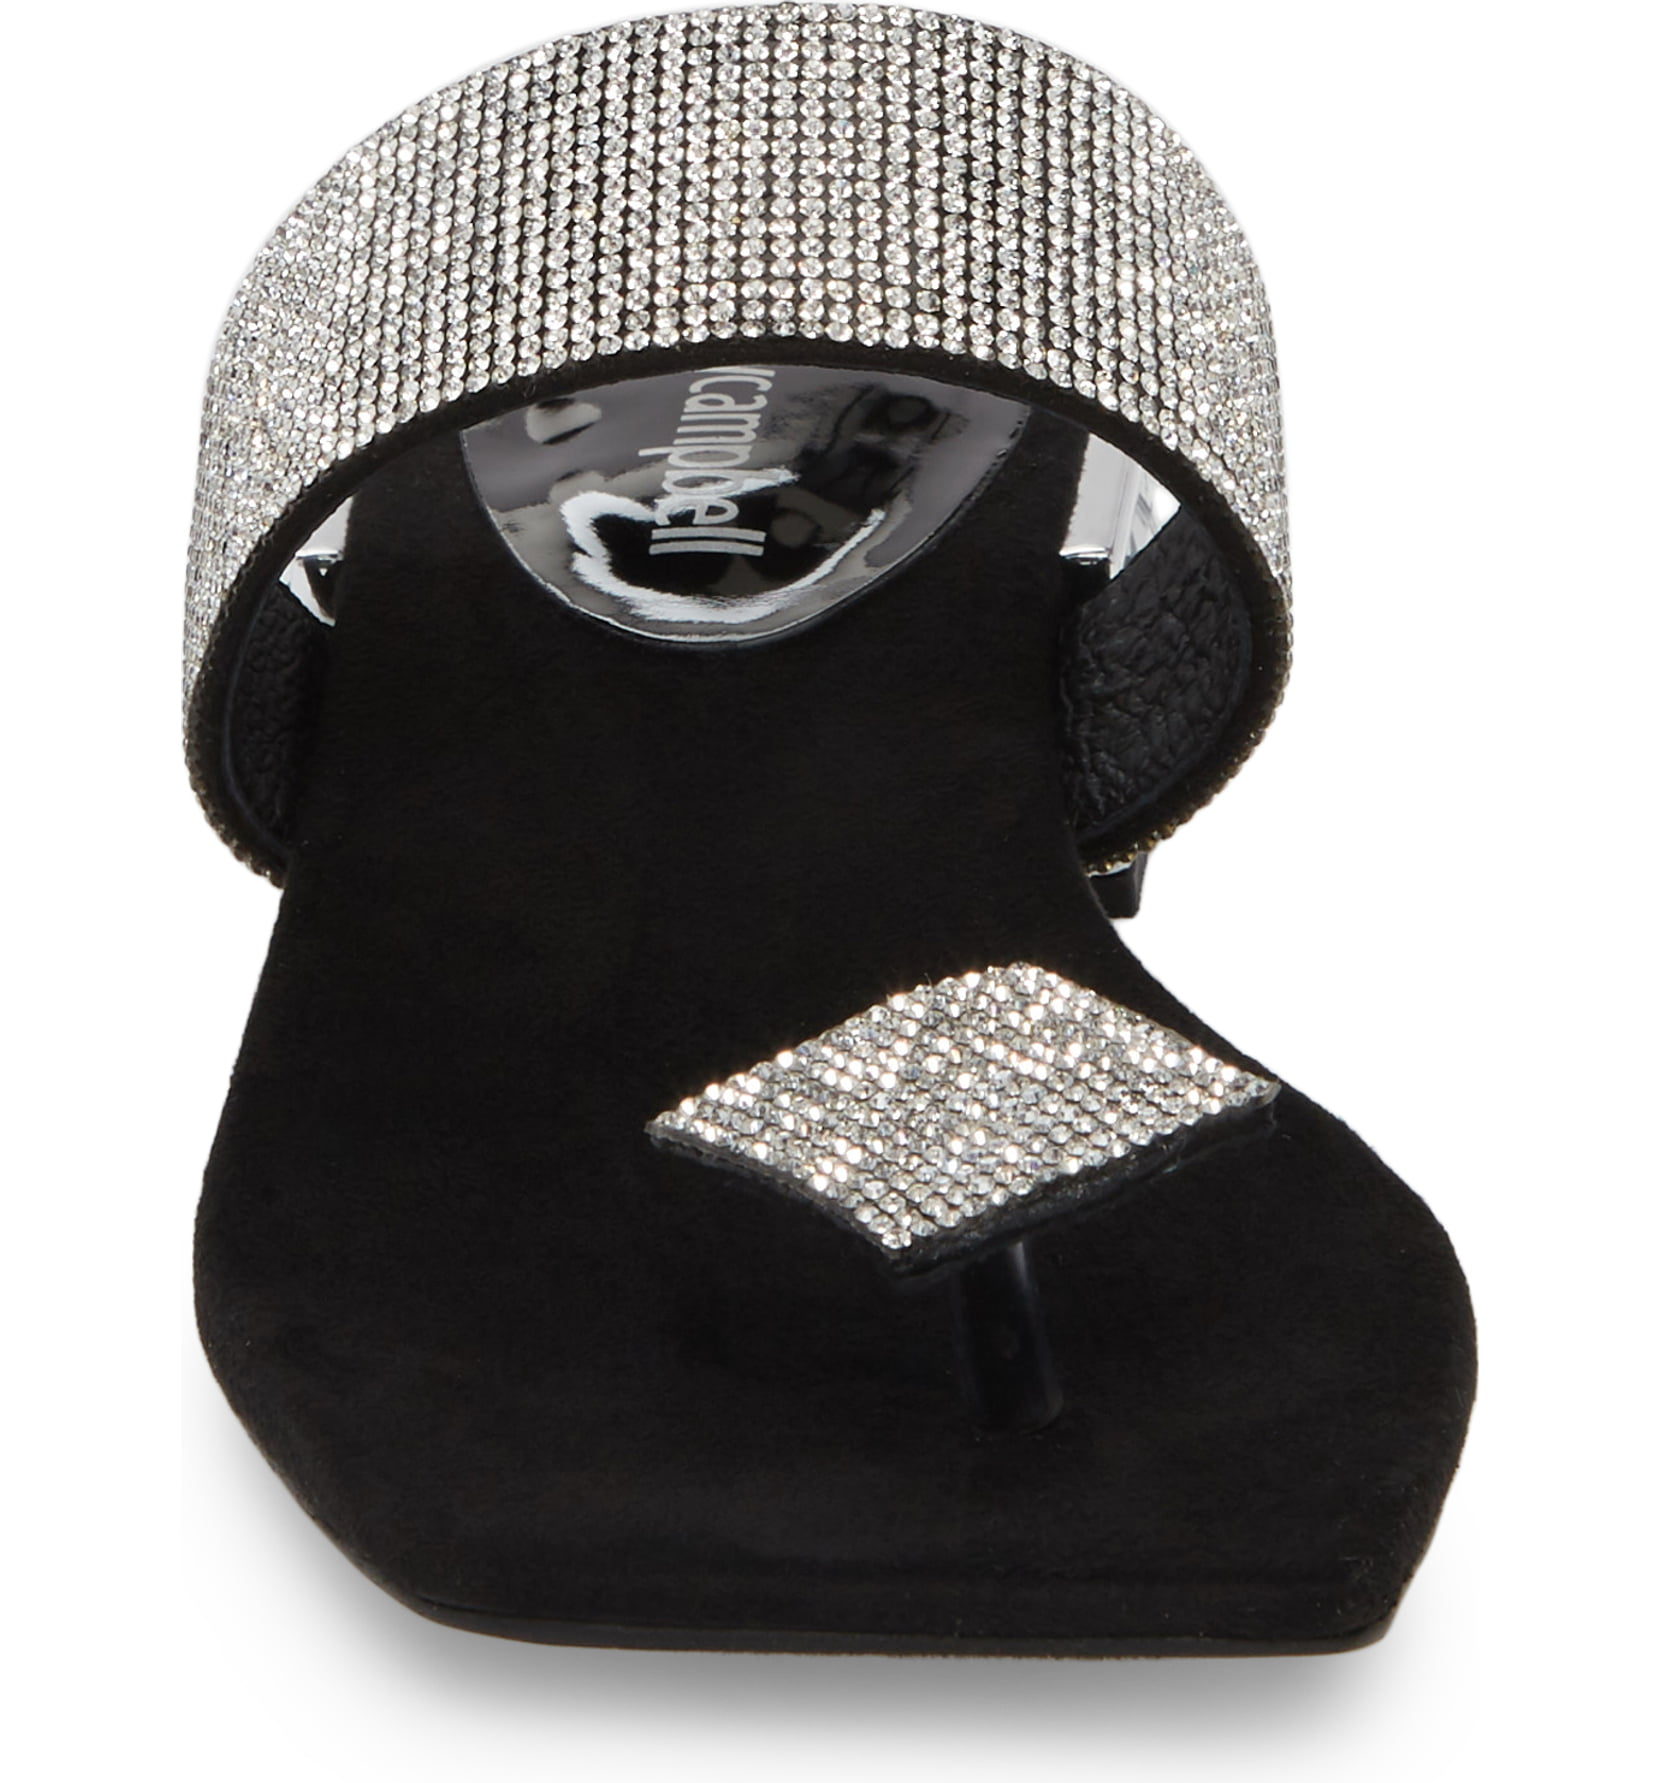 Jeffery-Campbell-ALISE-SH-Black-Silver-Embellished-Sandal-Jeweled-Square-Heel thumbnail 9